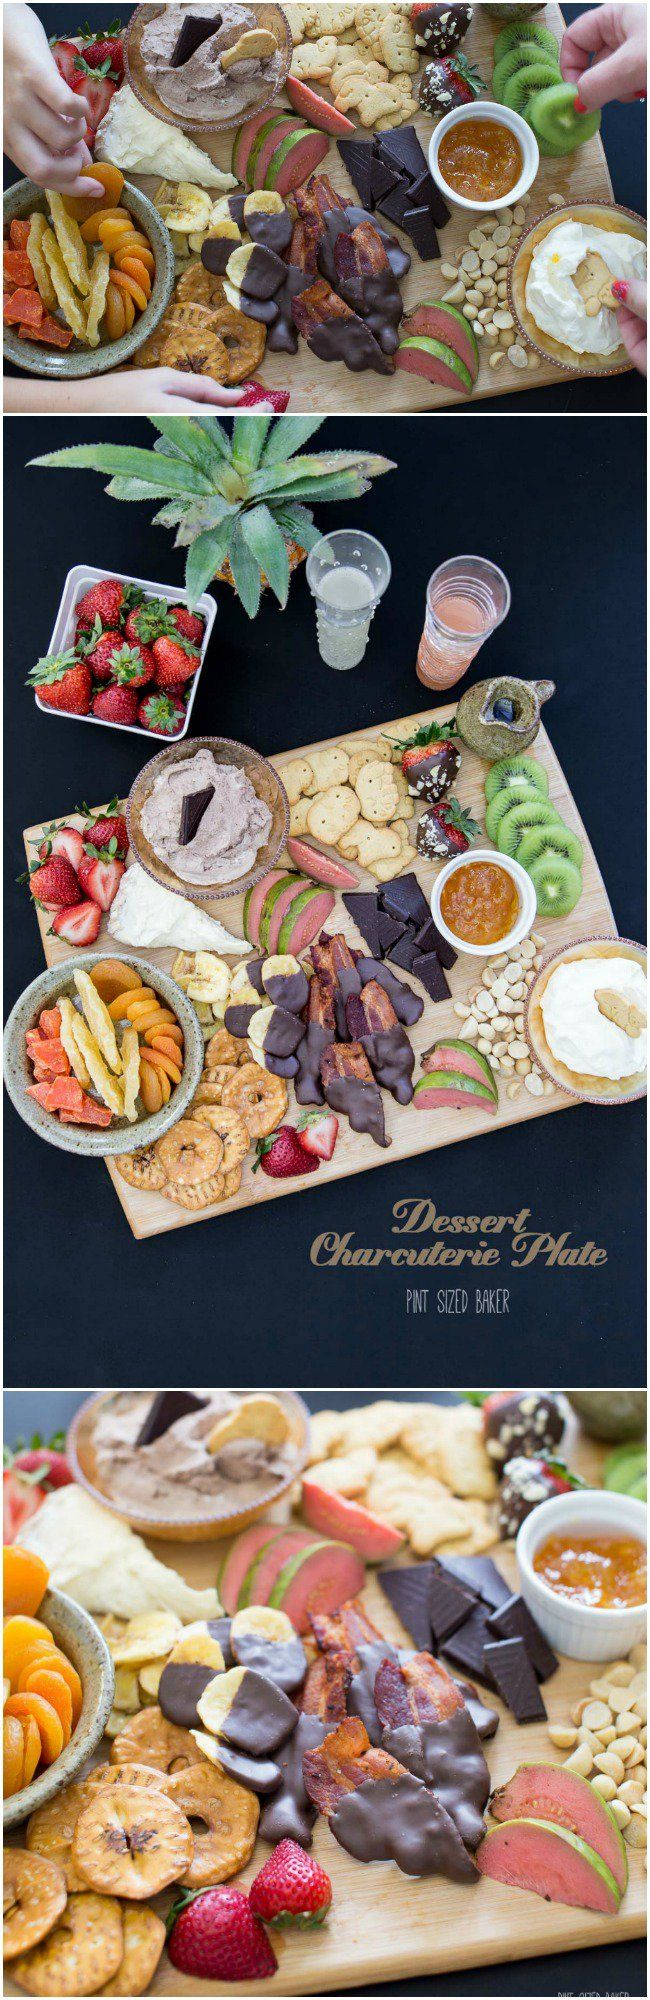 Fresh fruit, chocolate, animal crackers, and whipped cream make up a great dessert charcuterie plate.